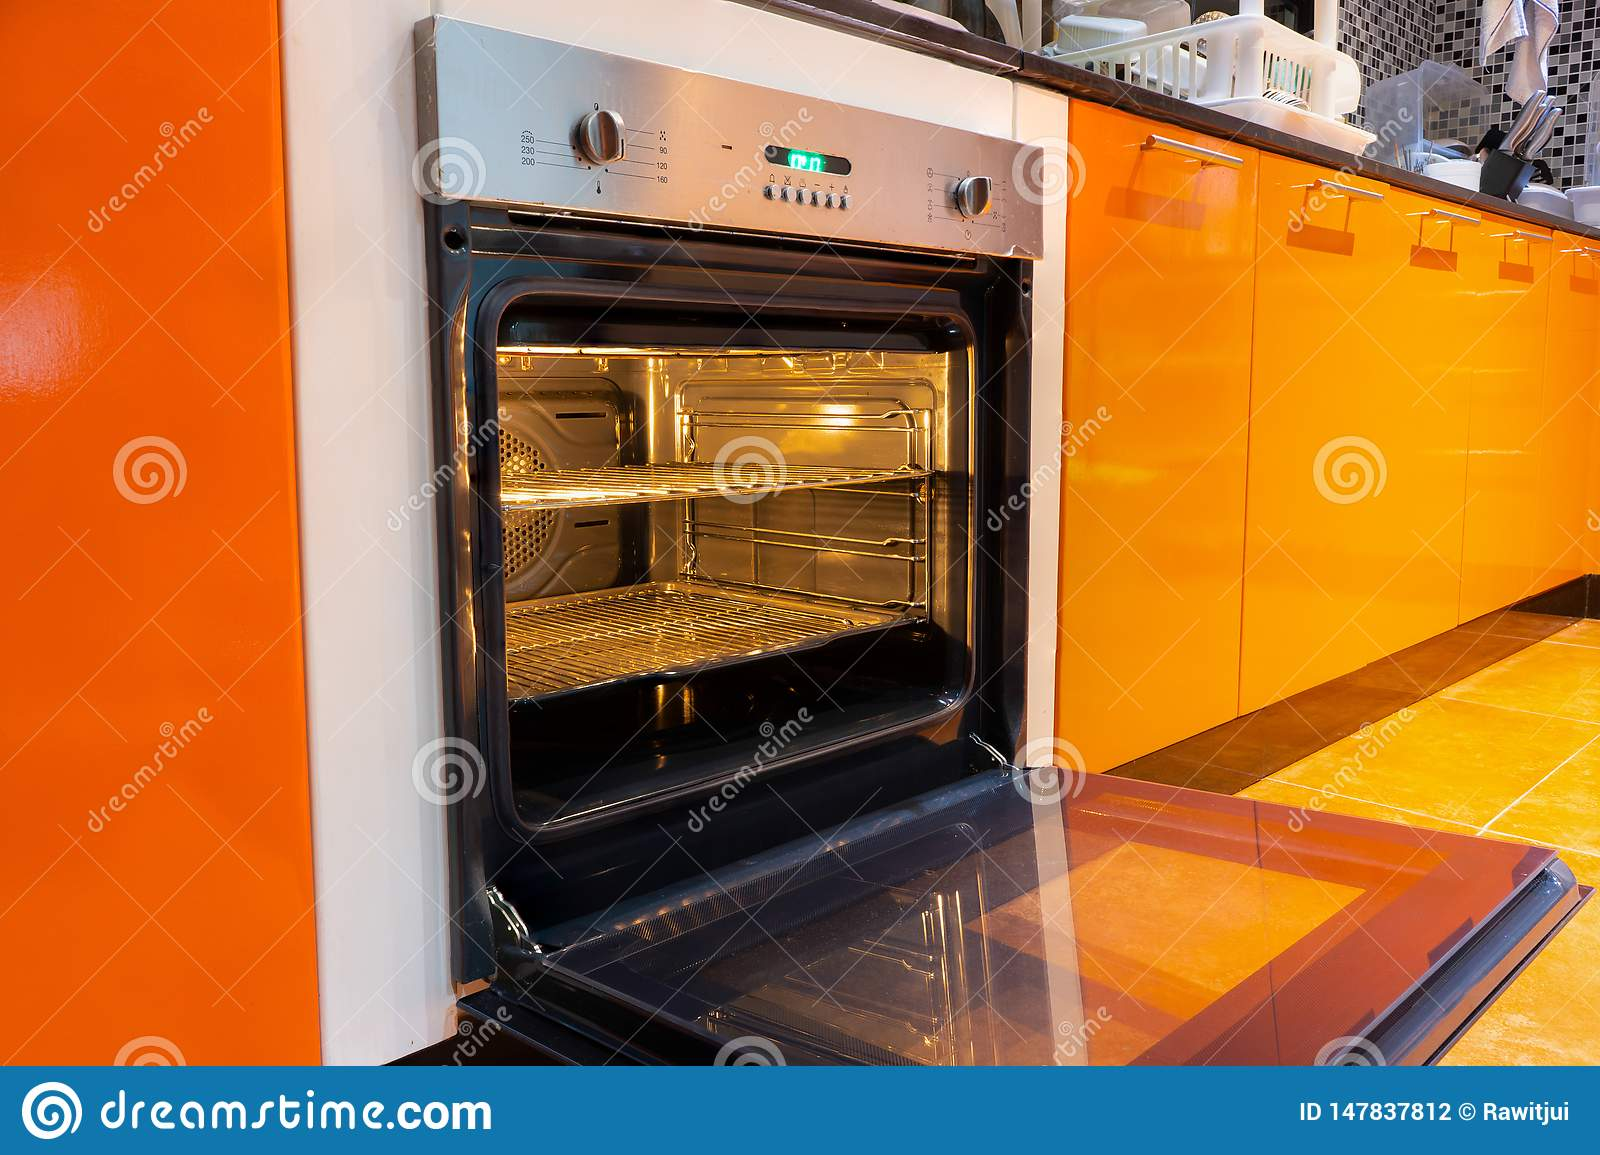 Opened oven in the kitchen